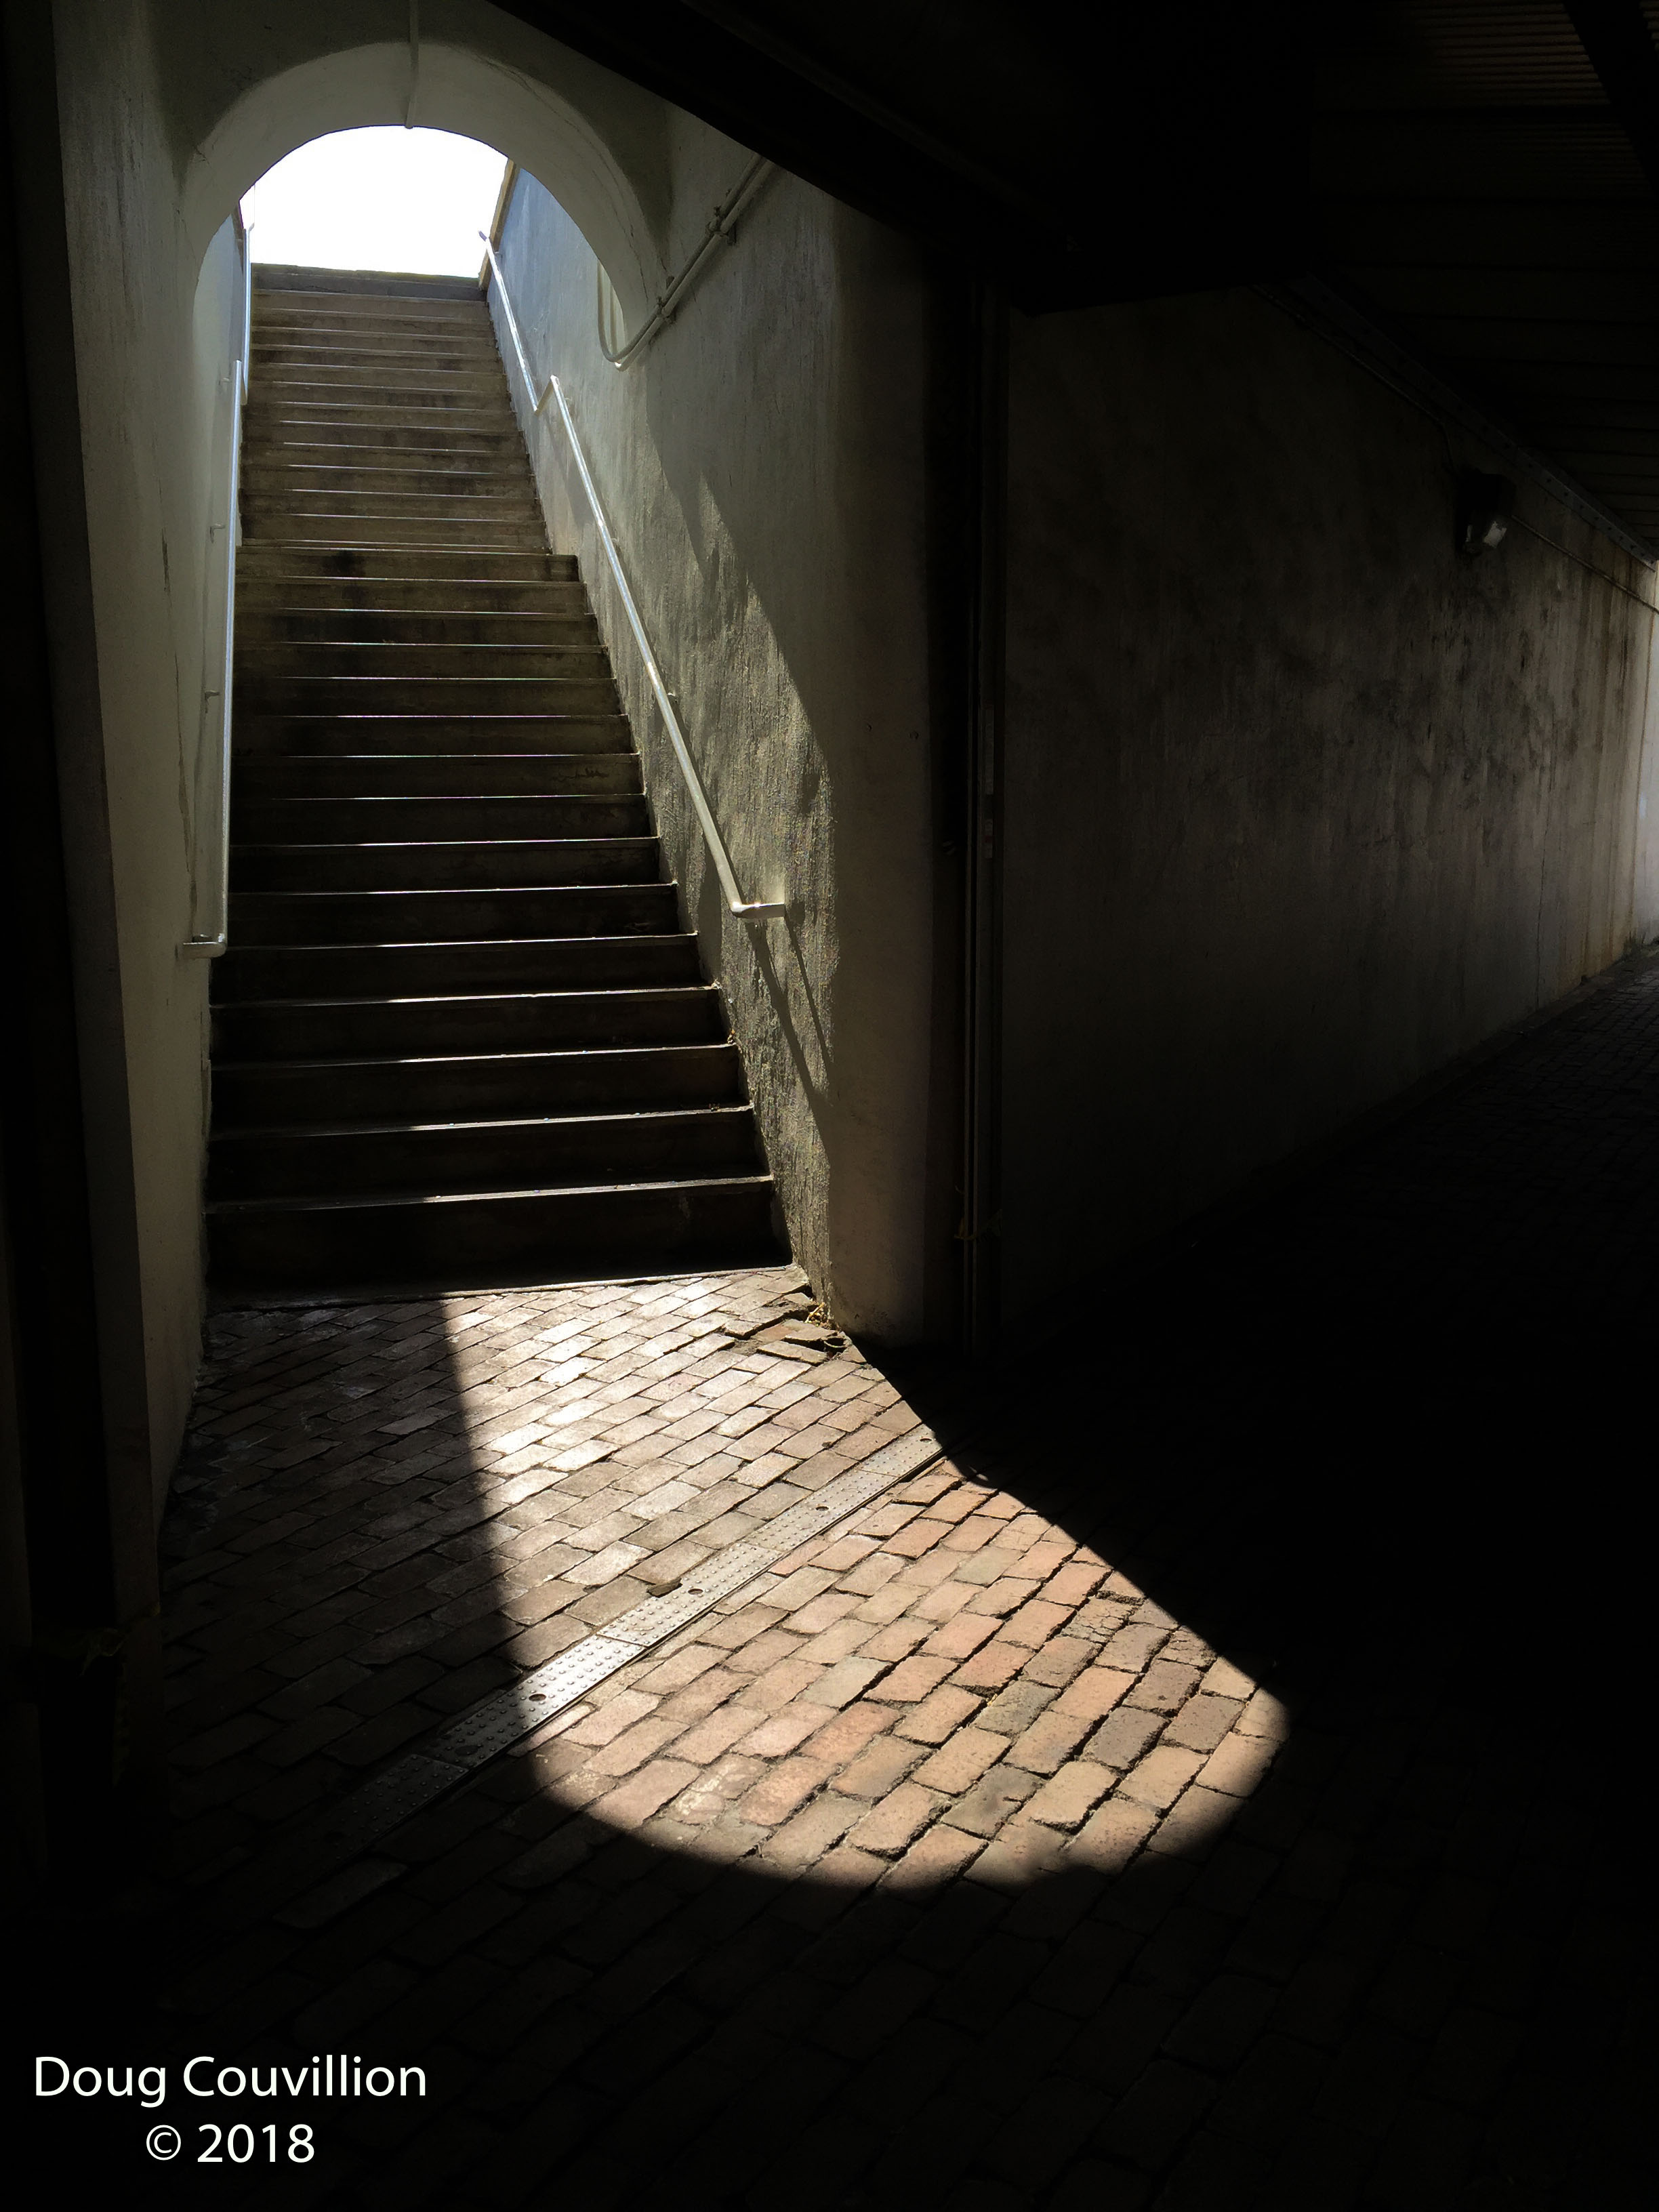 Photograph of stairs leading from a dark walkway into the bright light by Doug Couvillion